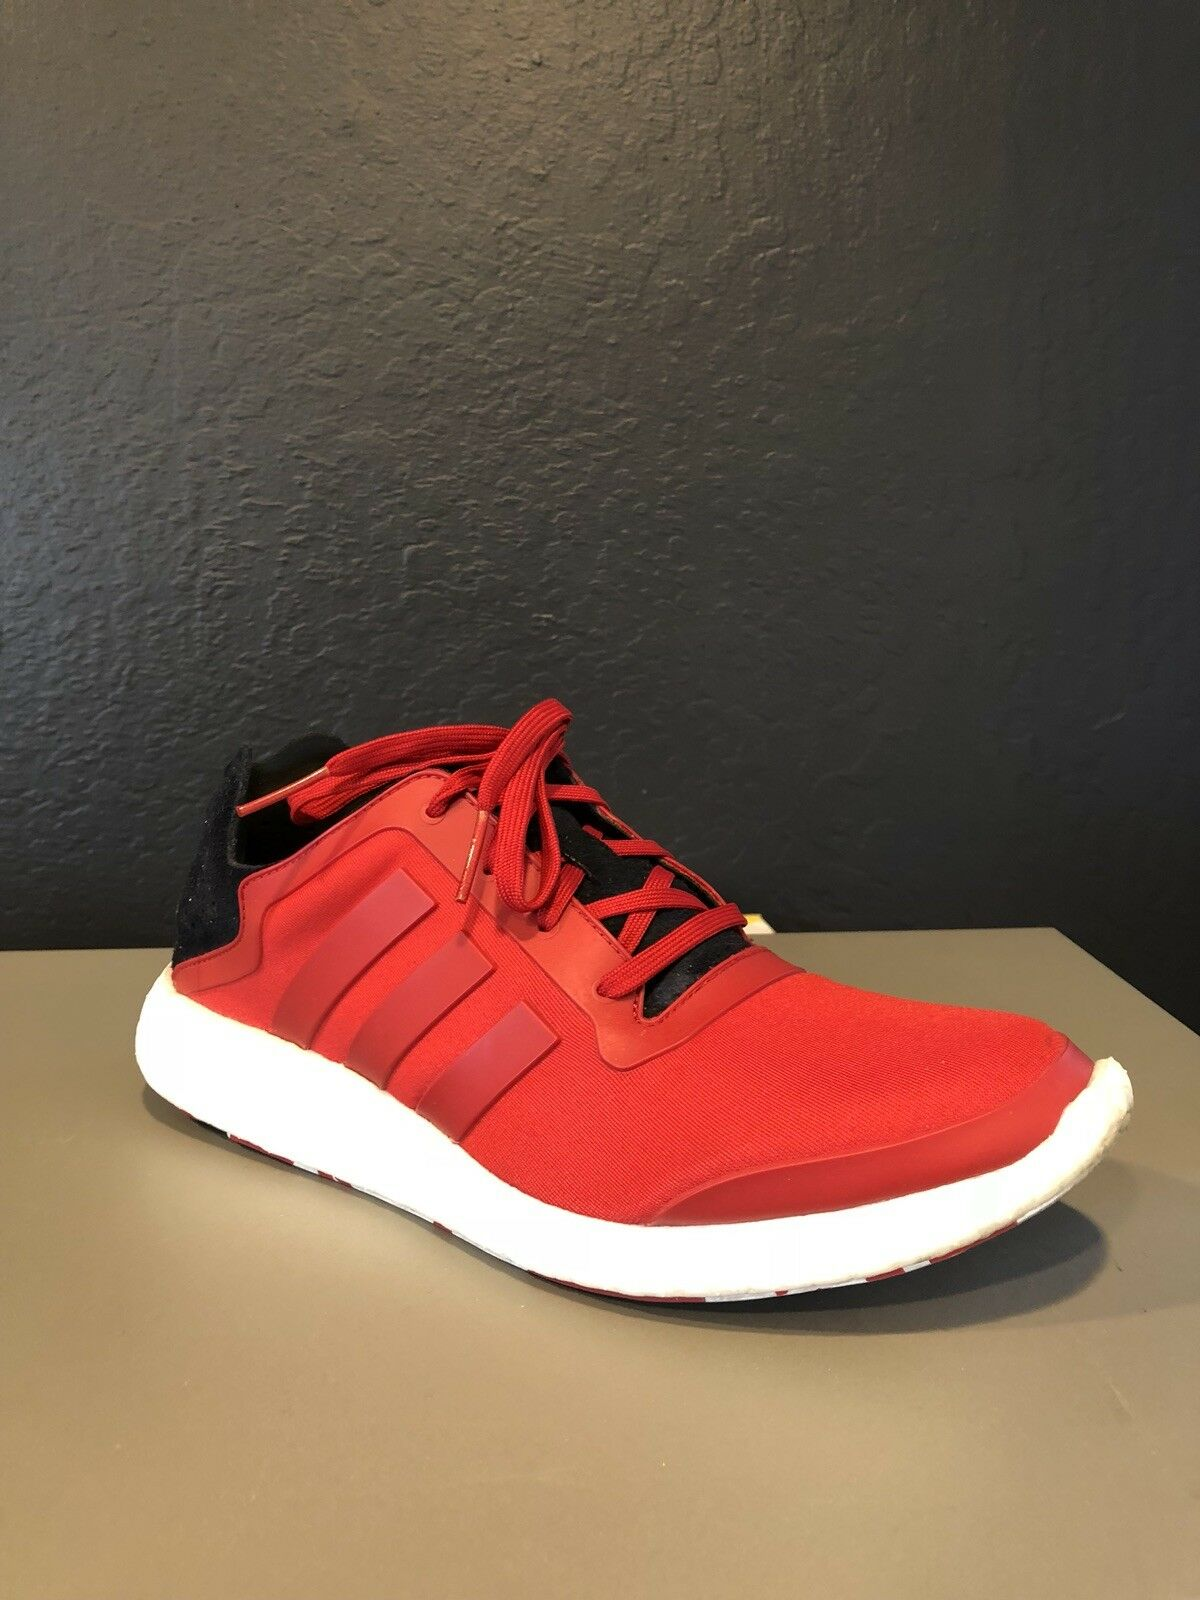 Adidas Pure Boost 1.0 PK Red Price reduction